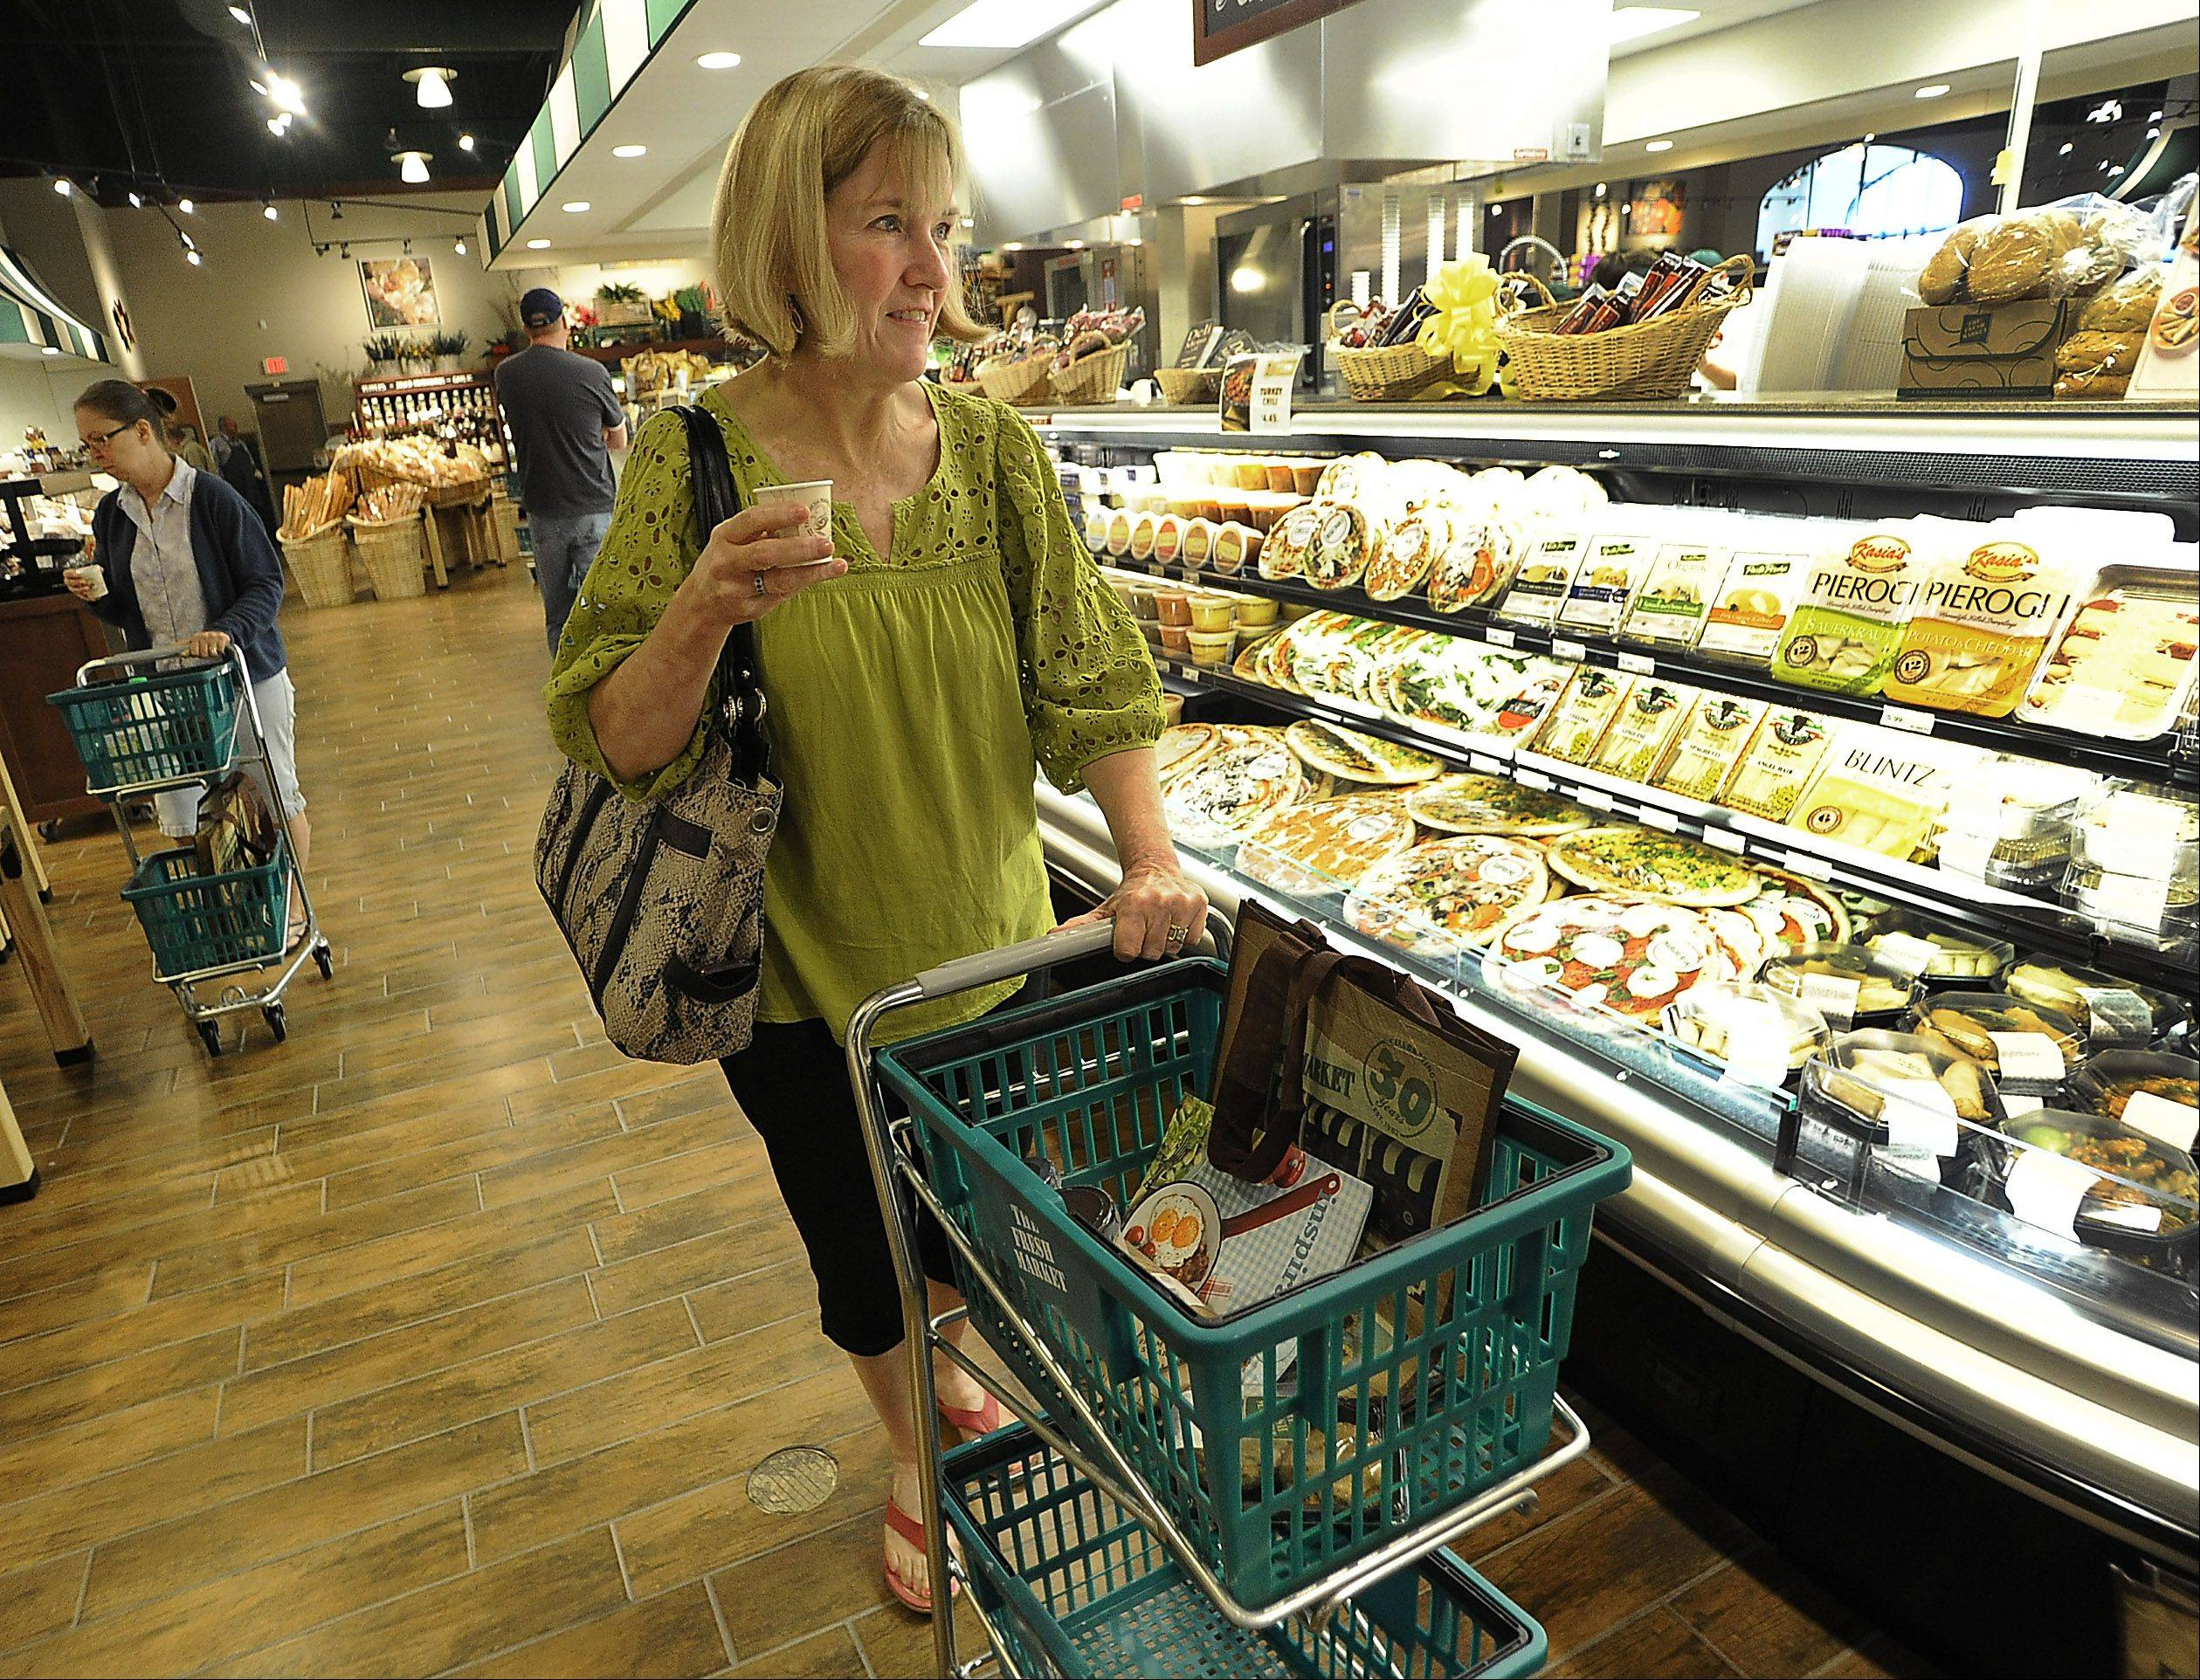 Shopper Kim Young of Vernon Hills enjoys the grand opening of The Fresh Market in Lincolnshire on Wednesday. The supermarket is the first in Lincolnshire's 56-year history.